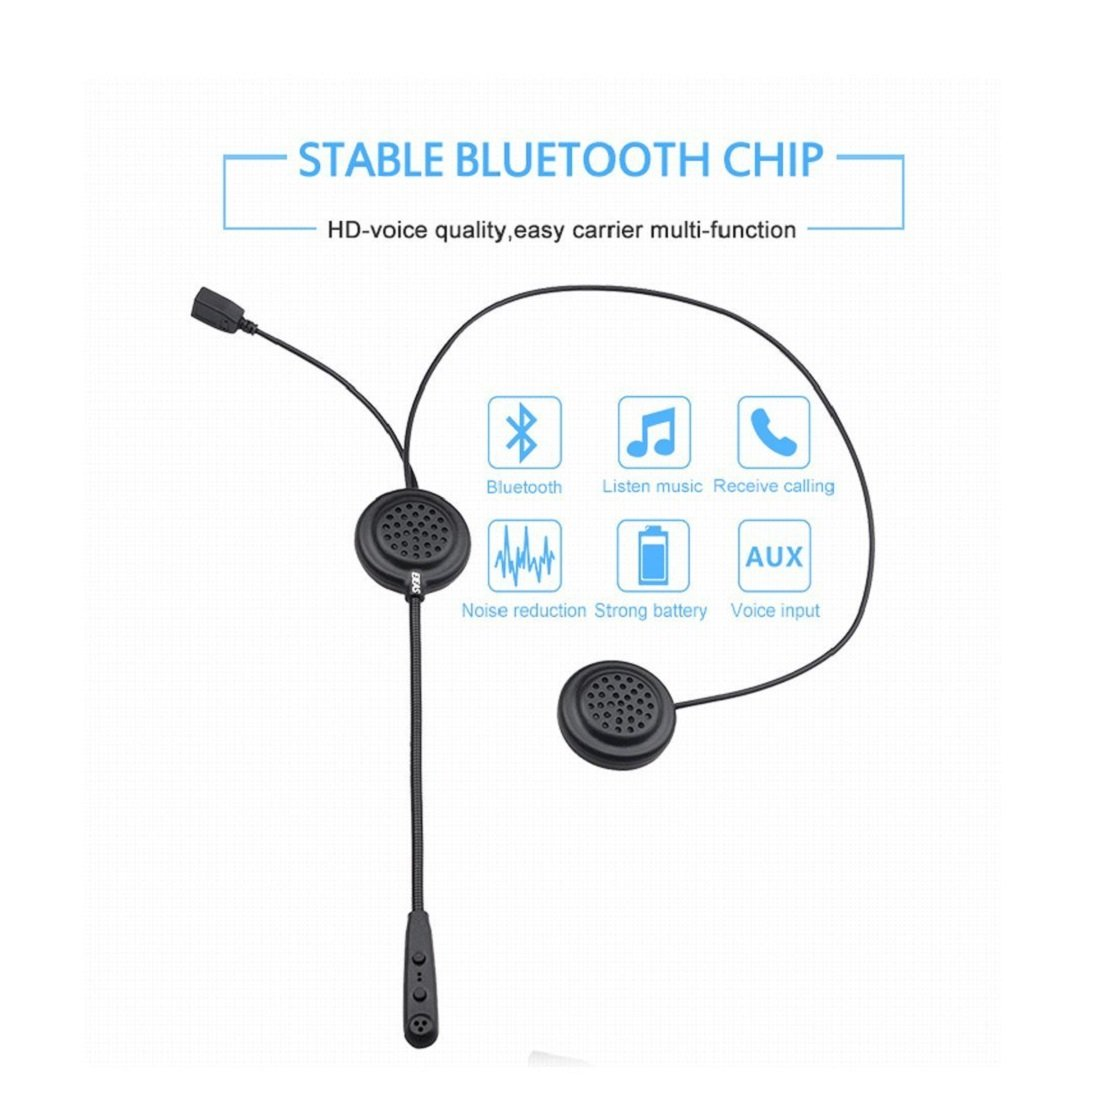 E200 Waterproof Bluetooth Helmet Headset 2 Riders Motorcycle Helmet Intercom 300M Communication System with AUX Input for Motorcycles and Skiing Esoku